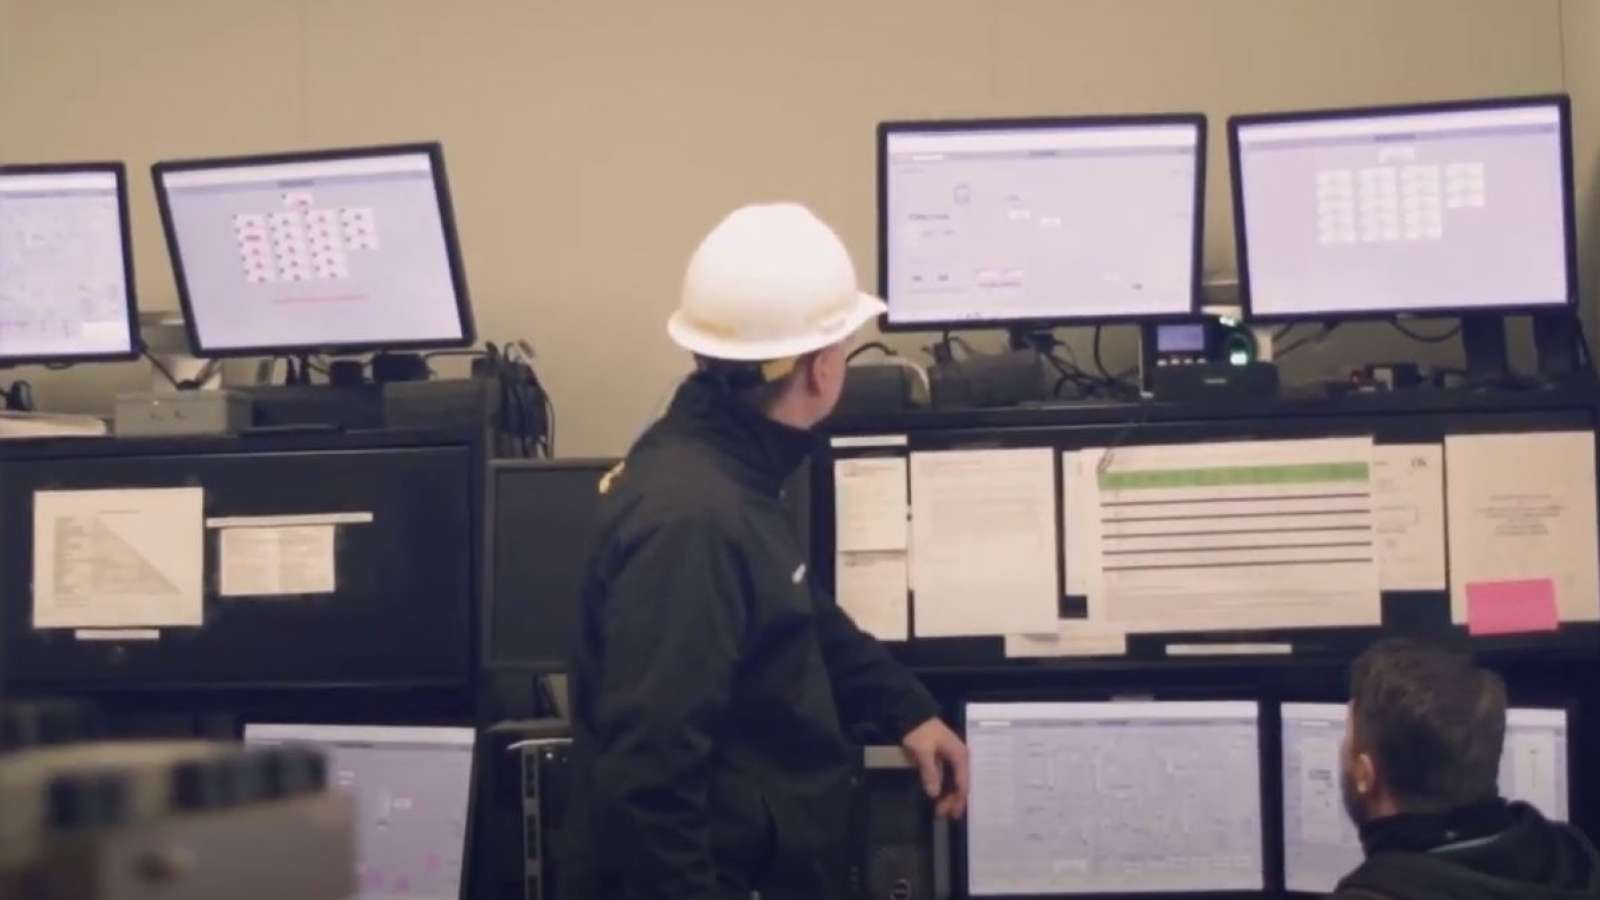 Dr. David Link looks at a monitor in a power plant